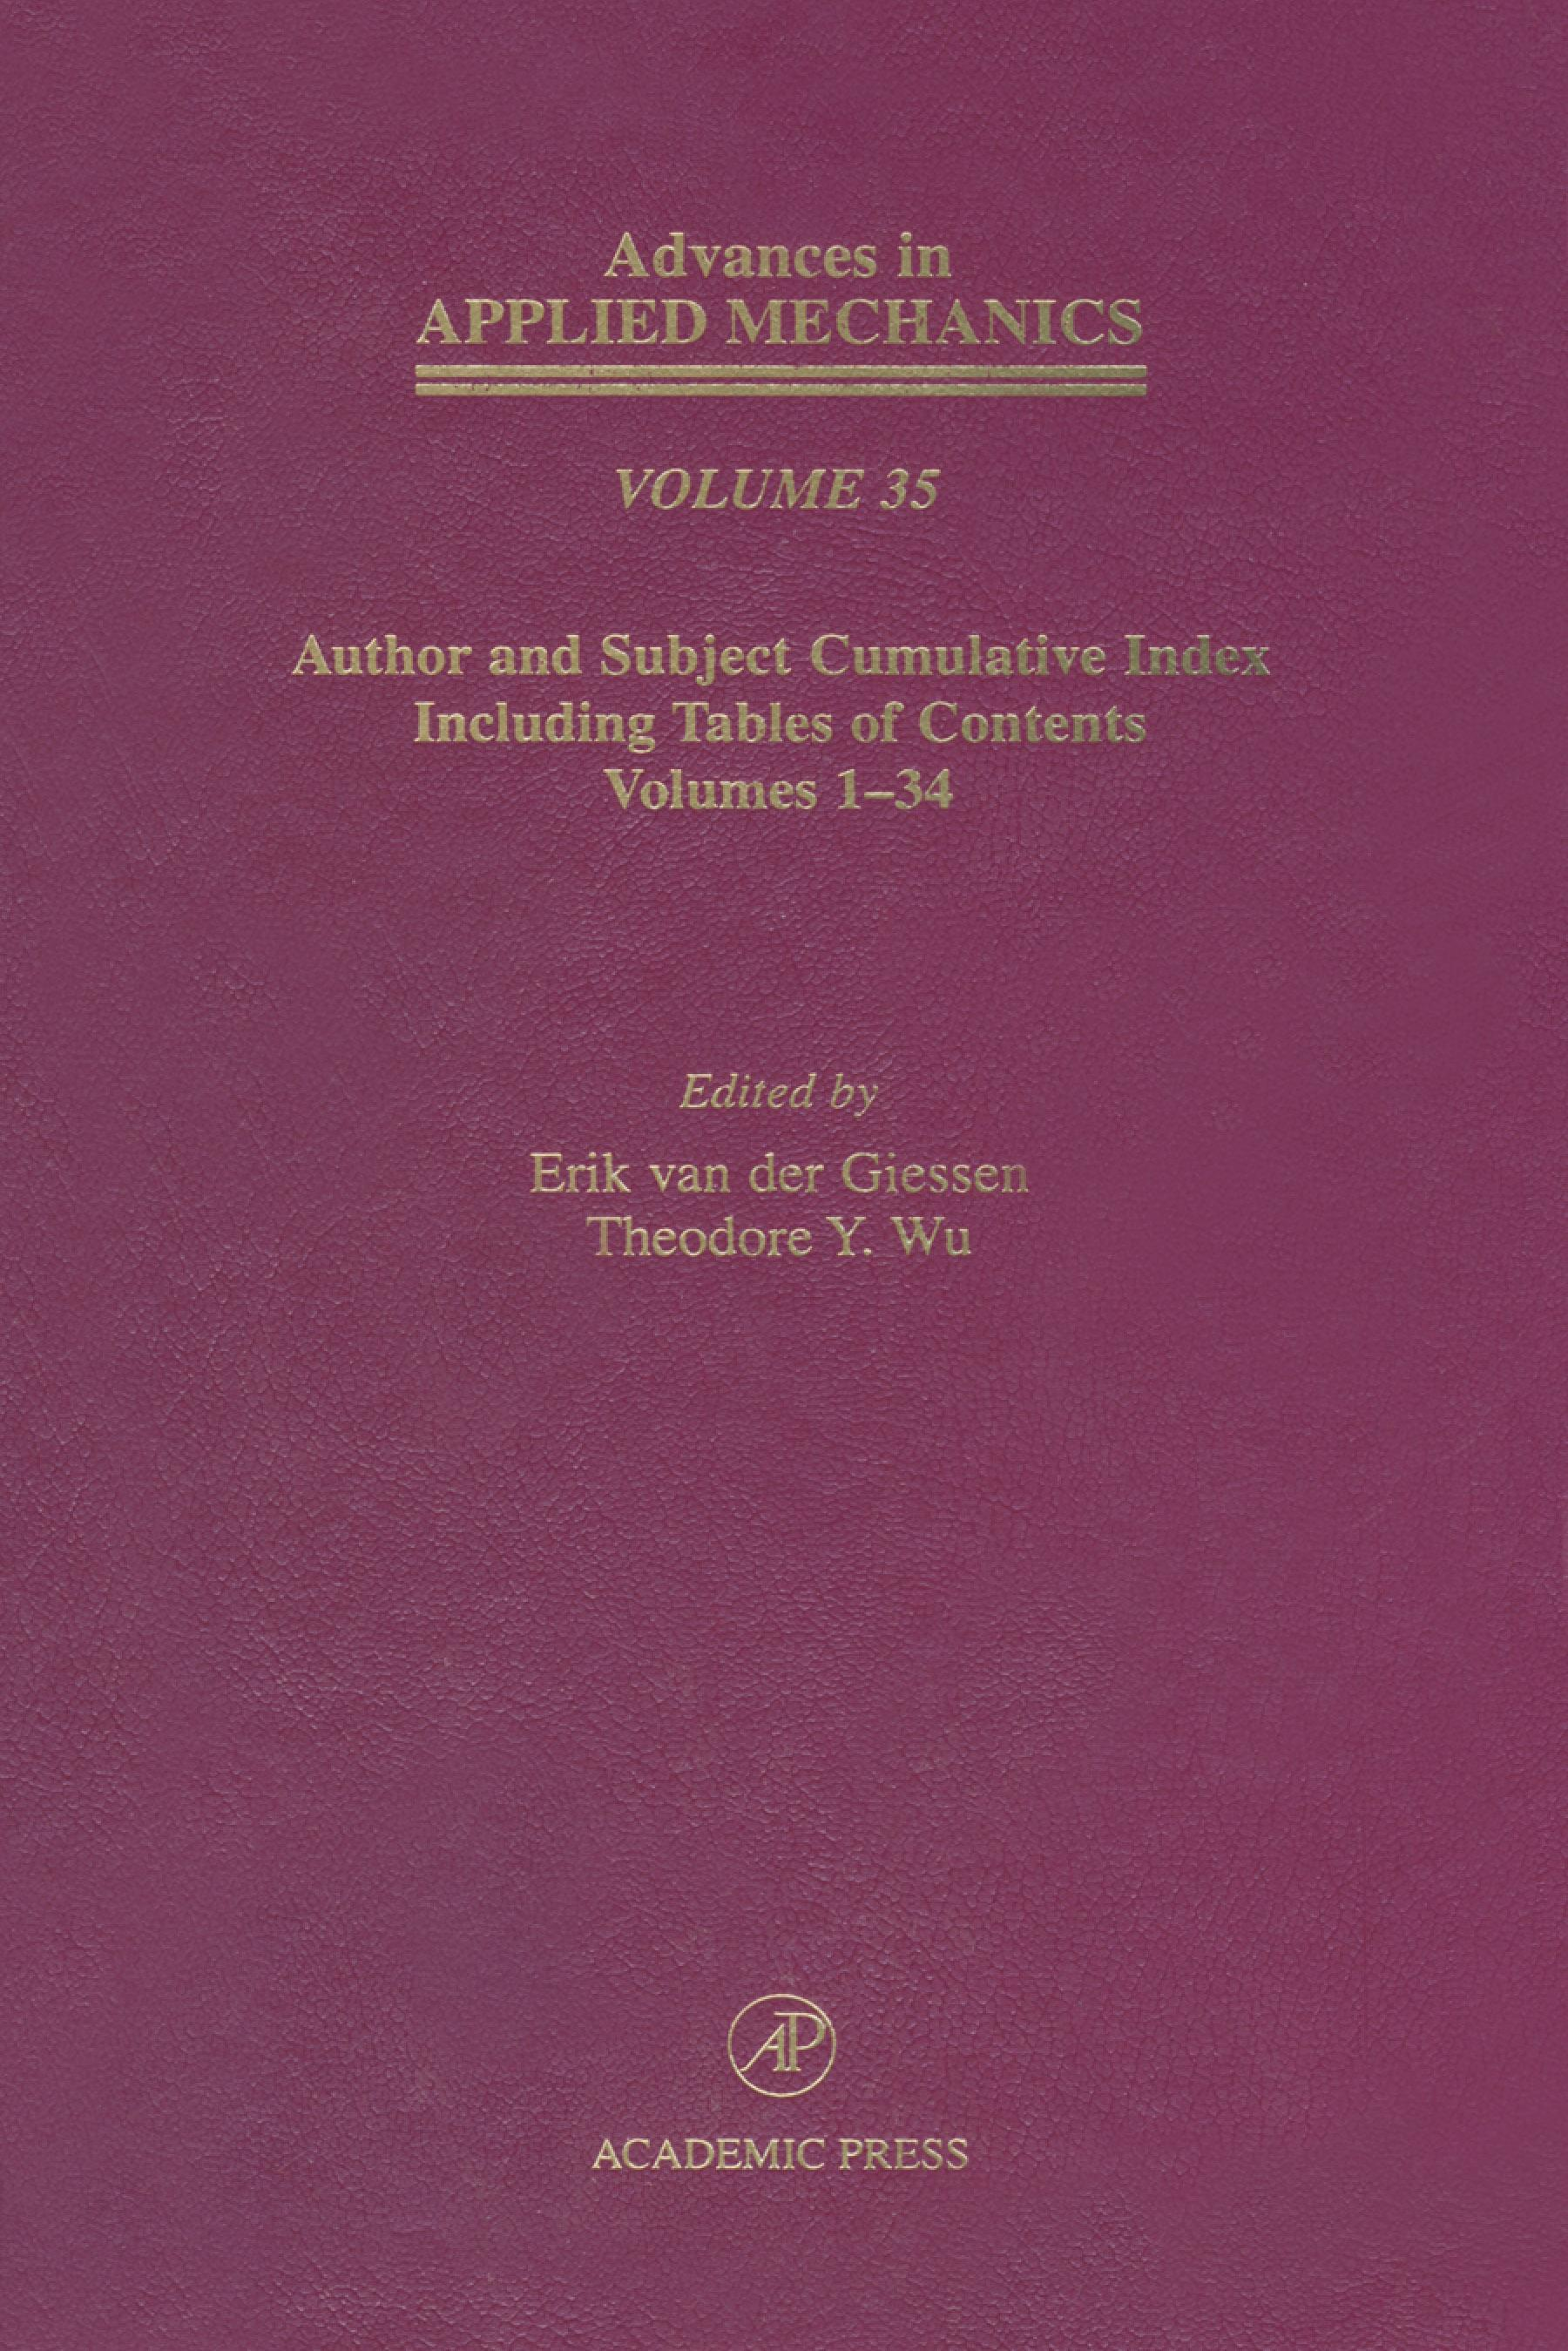 Author and Subject Cumulative Index Including, Tables of Content, Volumes 1-34: Subject and Author Cumulative Index (Volumes 1-34) EB9780080564135